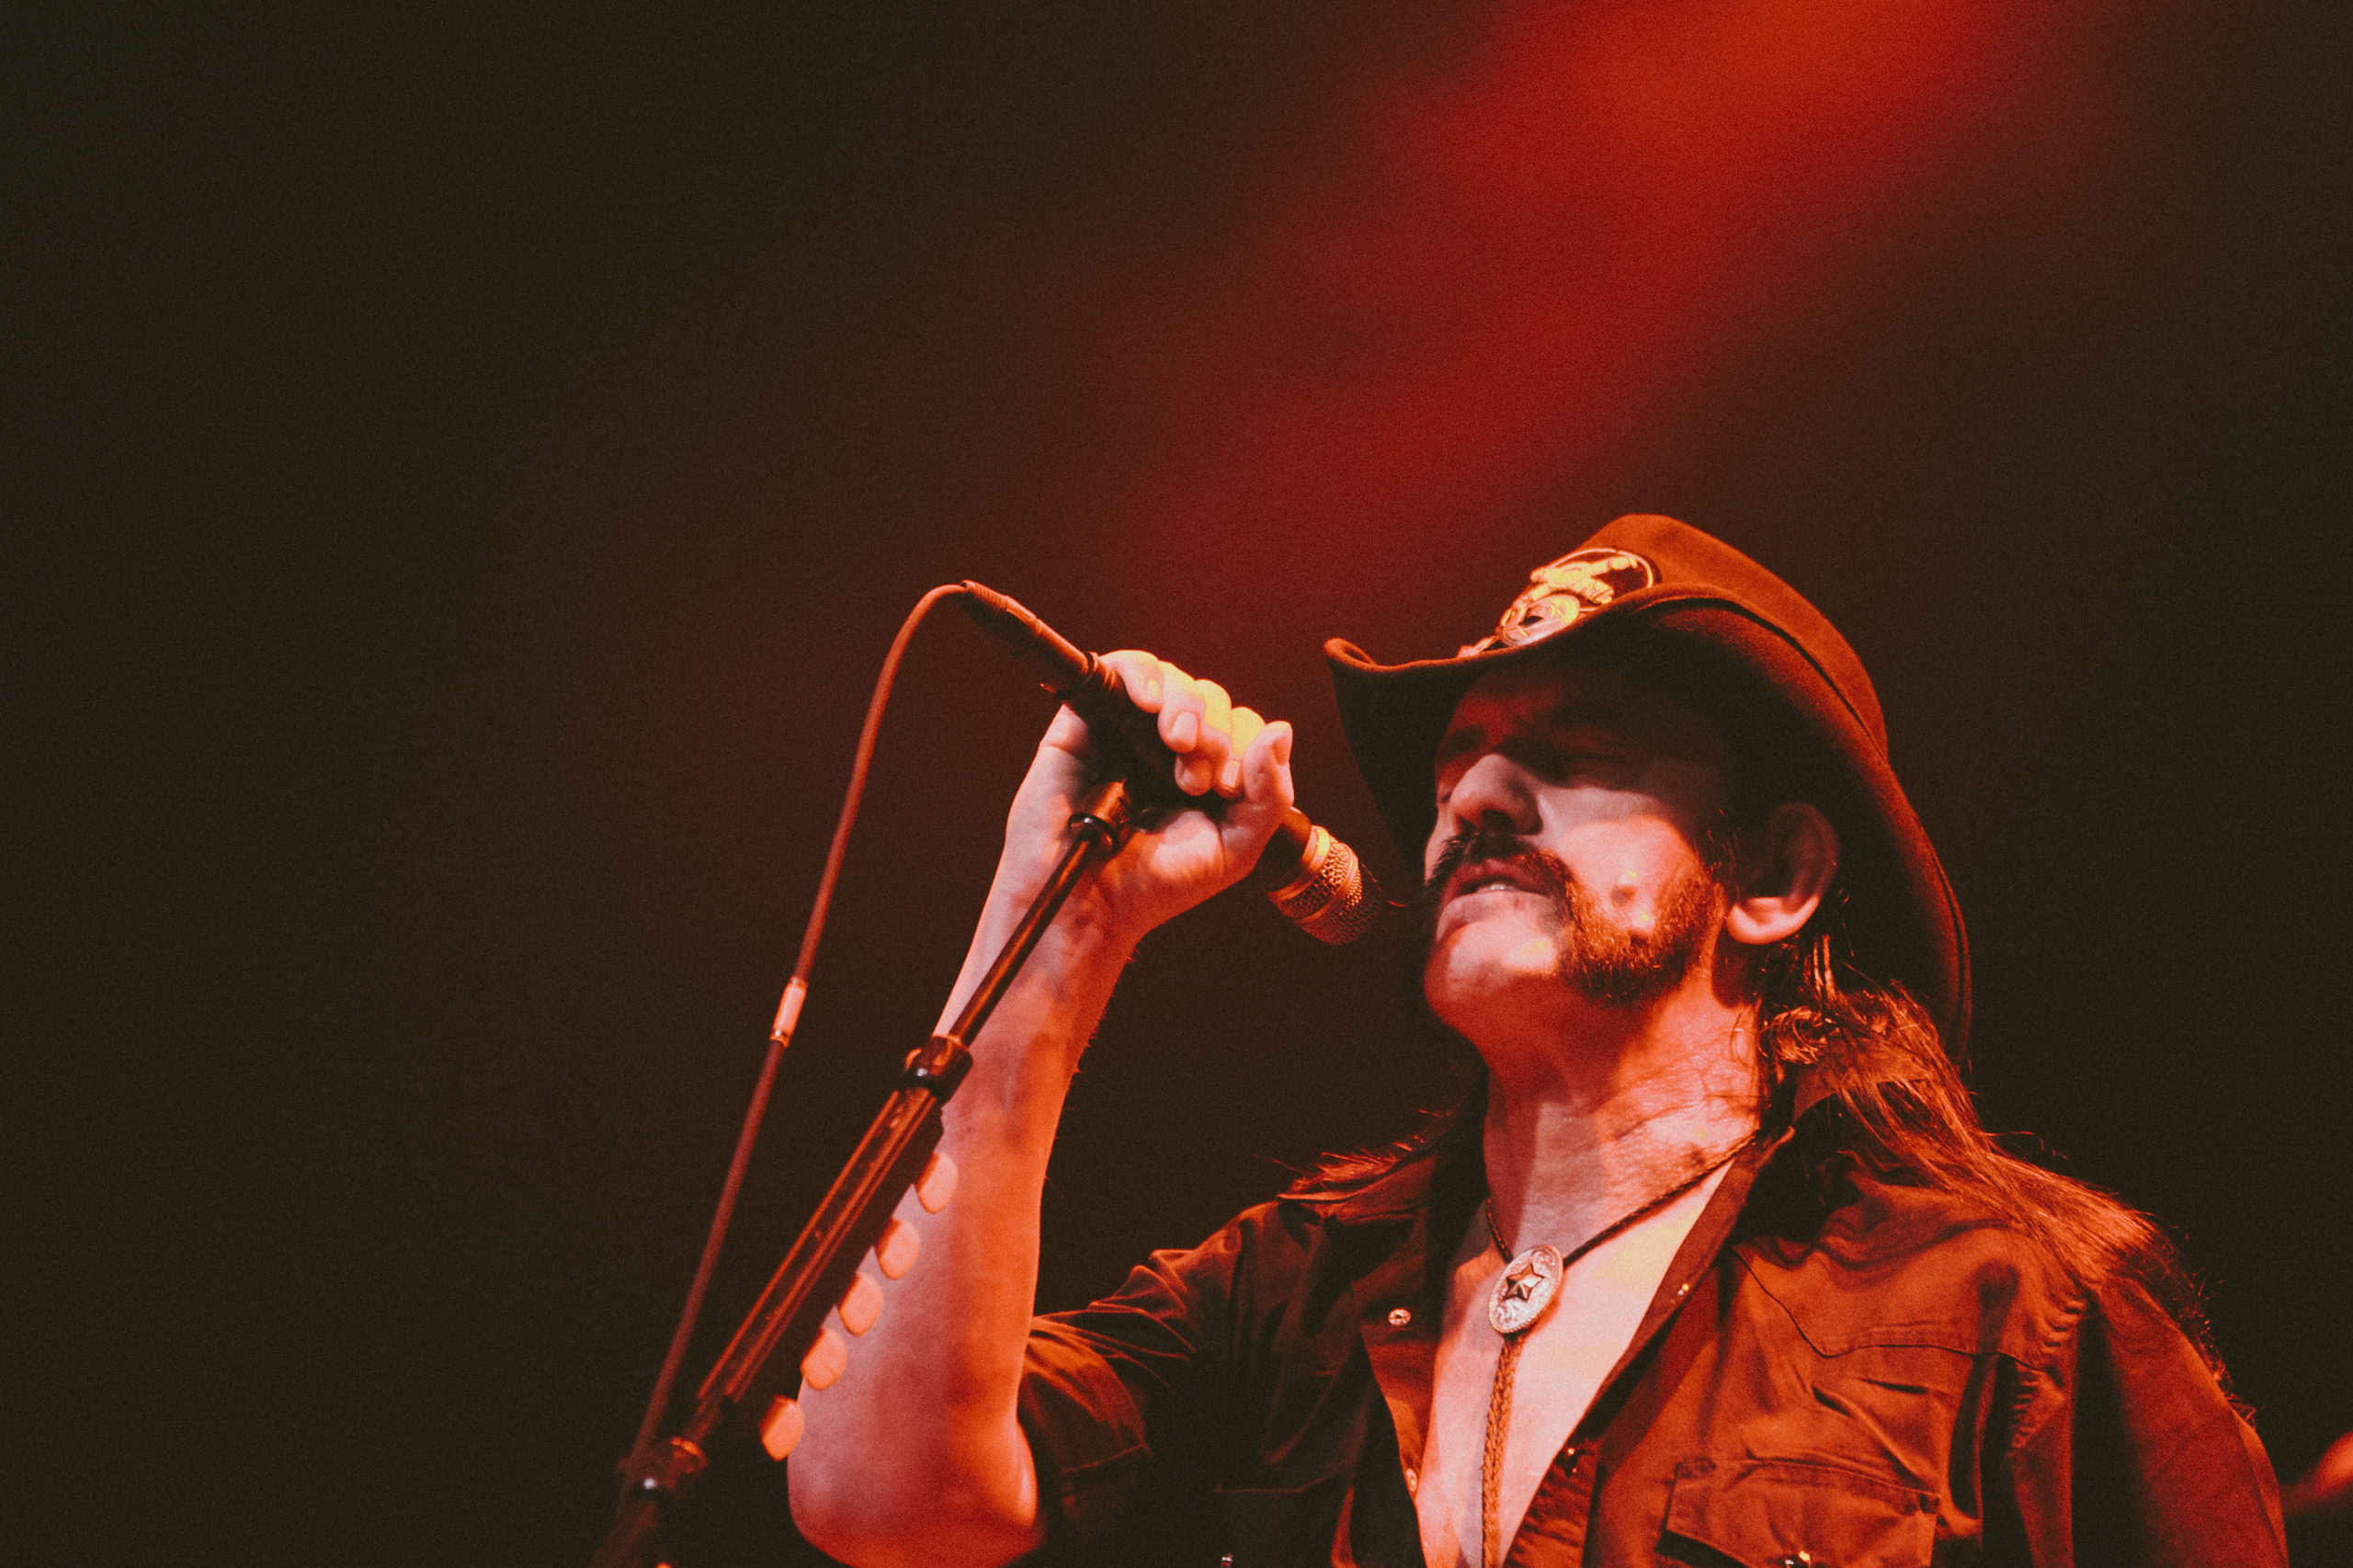 Lemmy from Motorhead performs at Austin Music Hall during SXSW 2010, bathed in red stage light